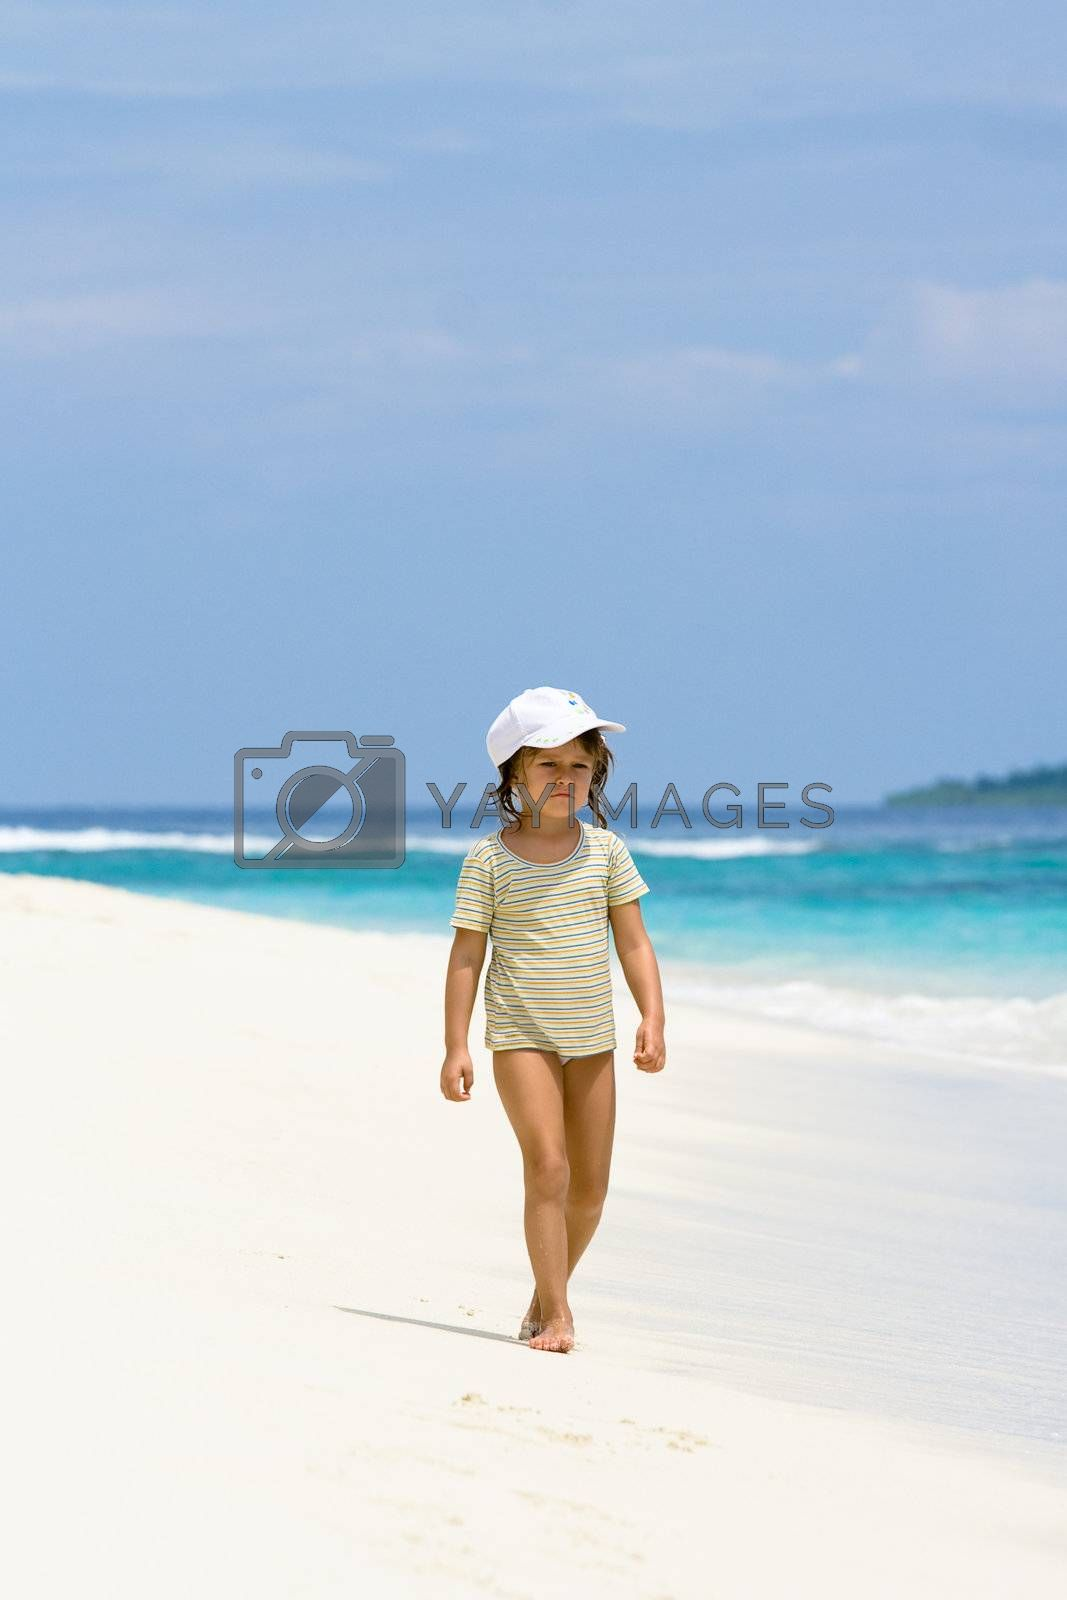 A beautiful young girl walking on the ocean beach in Maldives